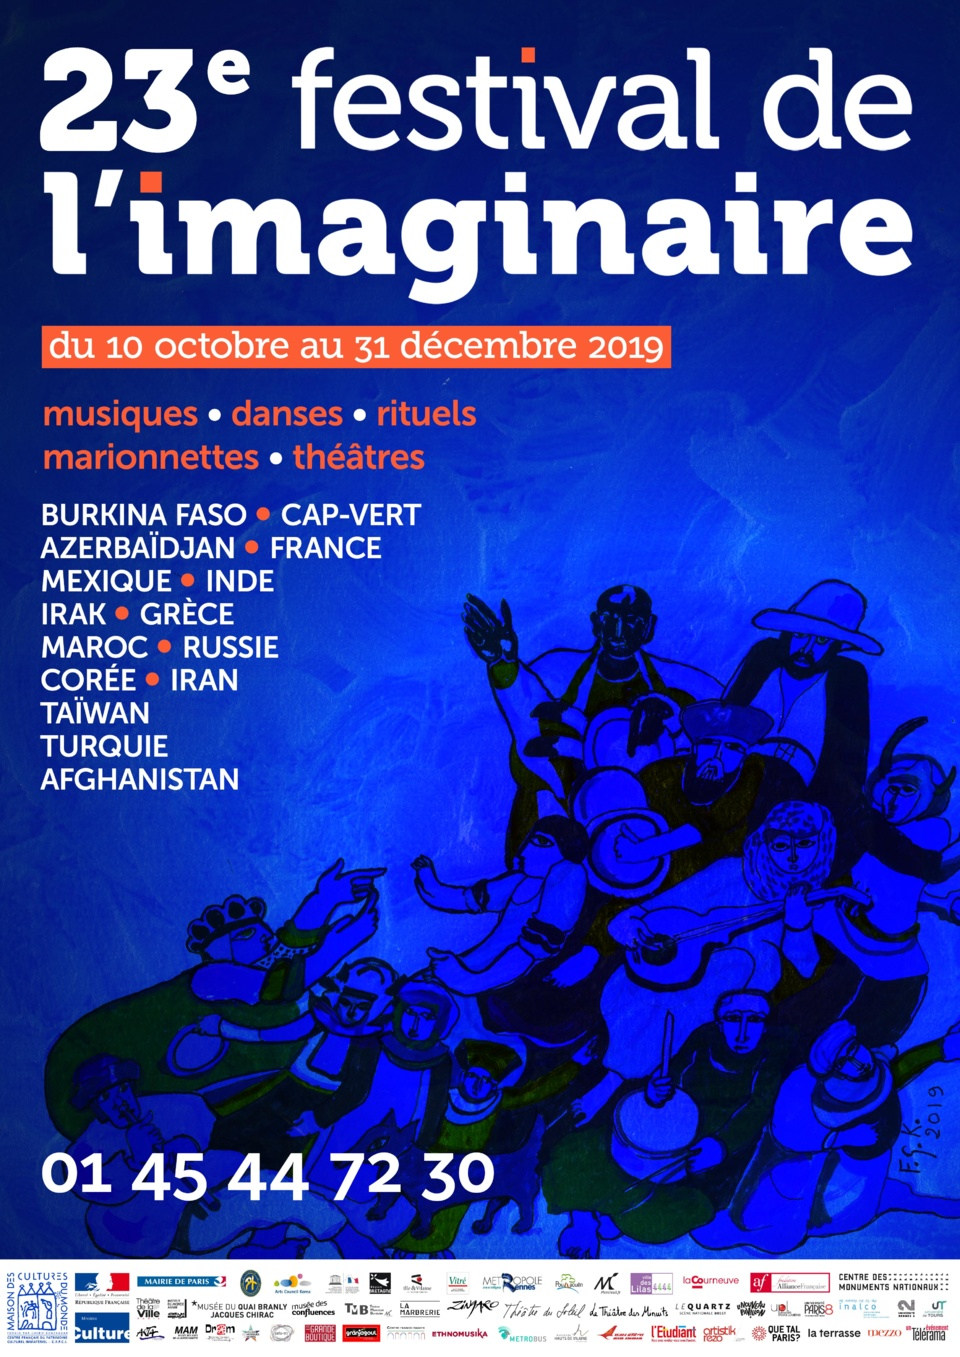 Critical perspectives on Intangible Cultural Heritage / Du 21 au 26 octobre 2019 au Château de Vitré